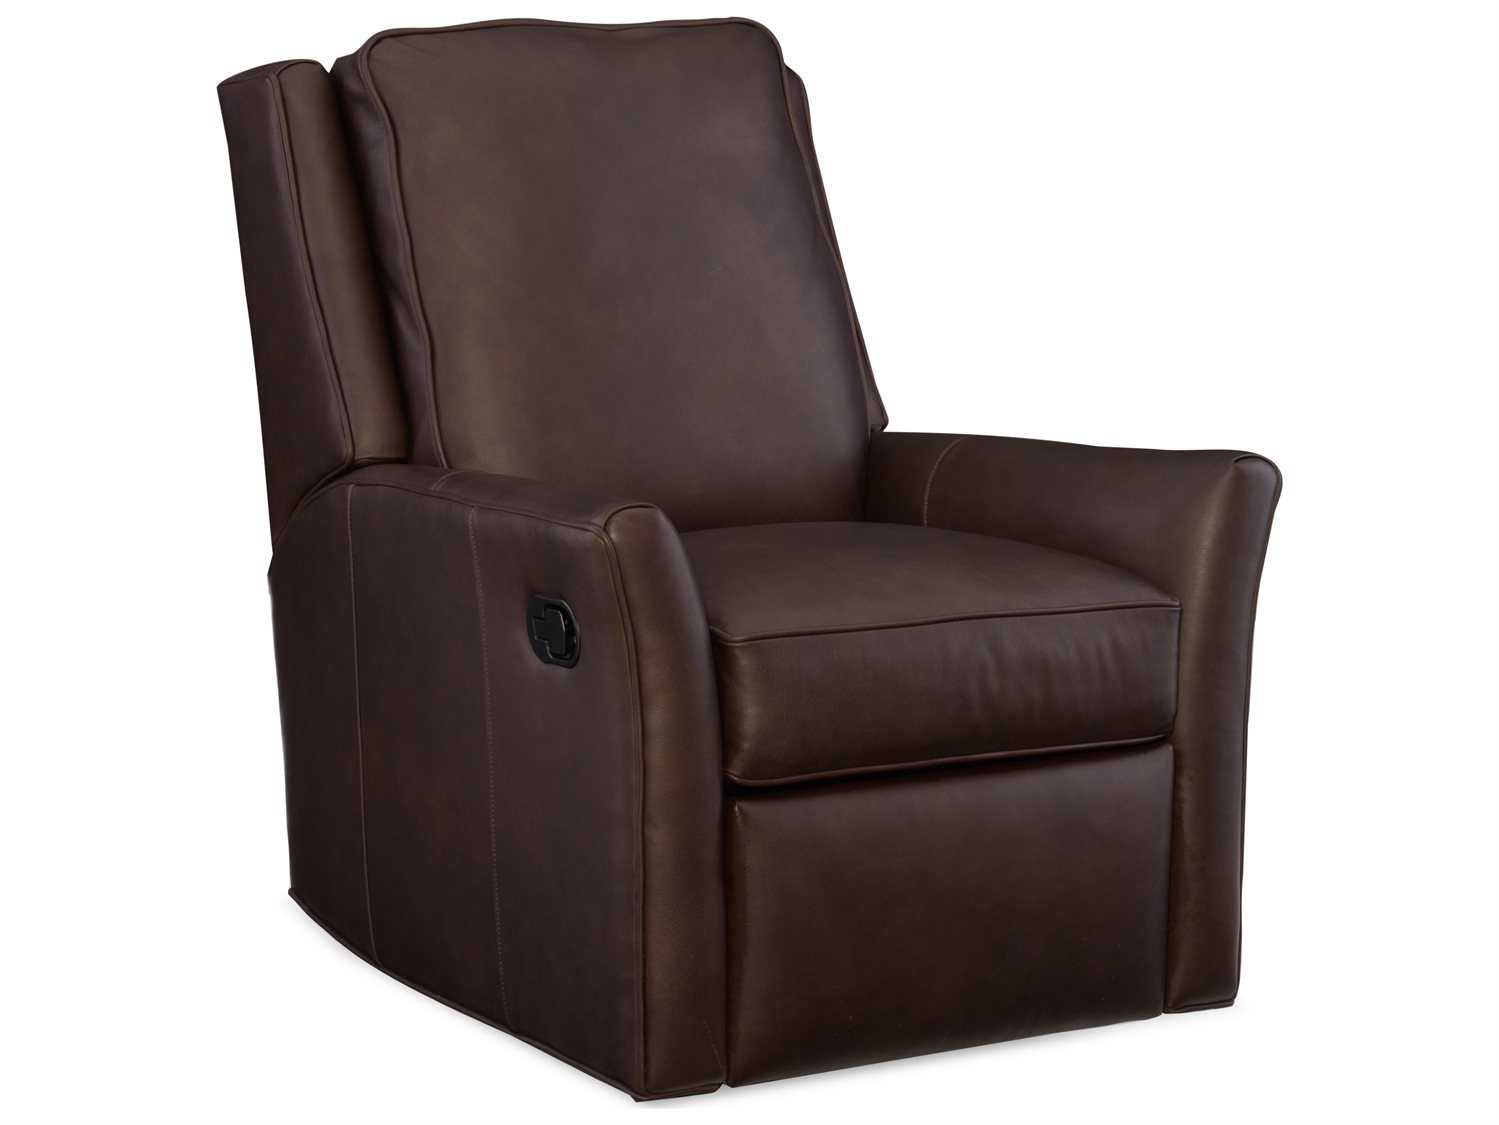 wall hugger recliner chair spindle legs bradington young barnes